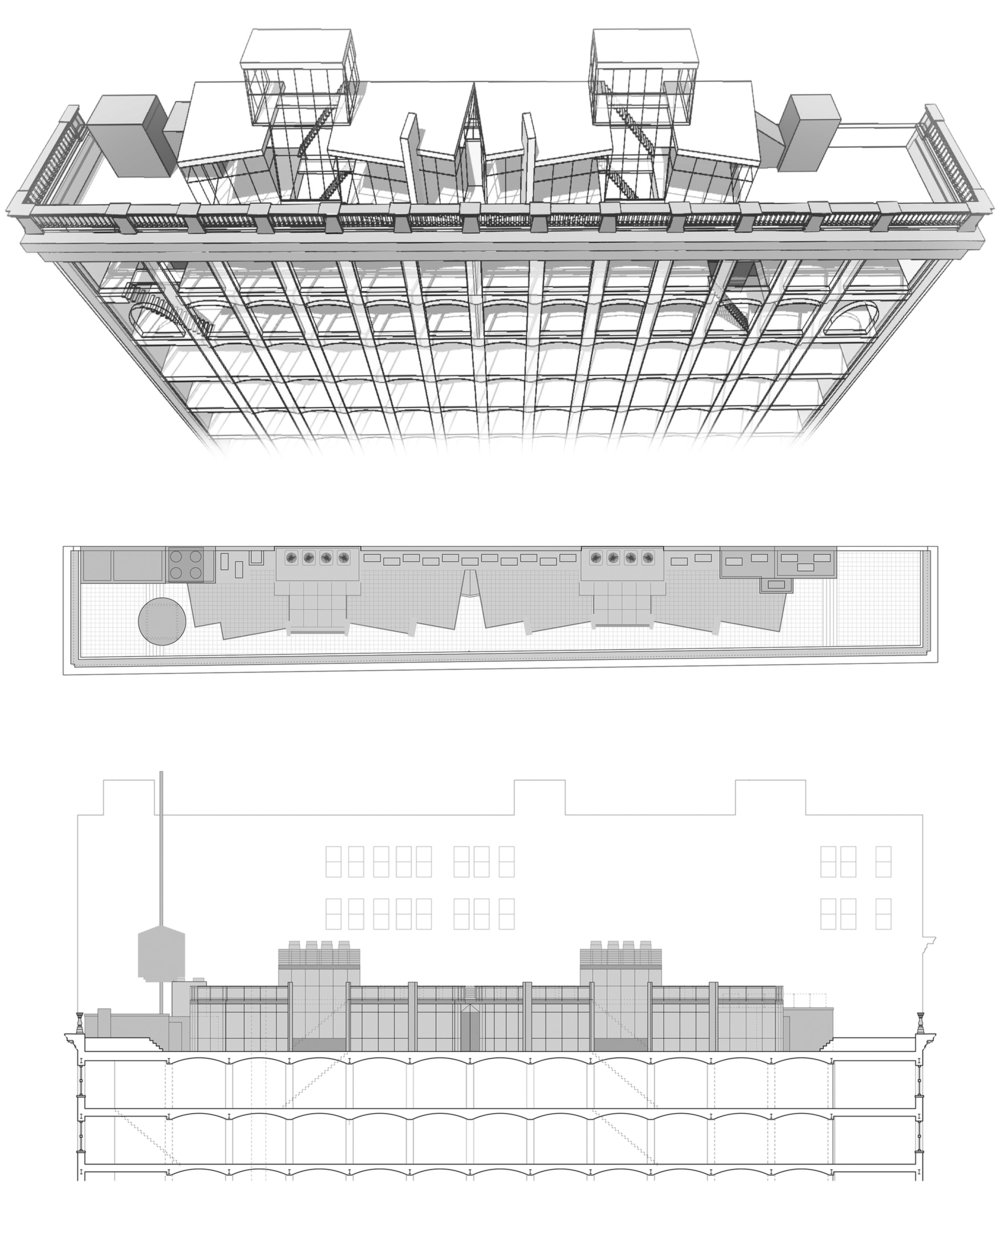 00_640ELEVATION-plan-axo copy.jpg